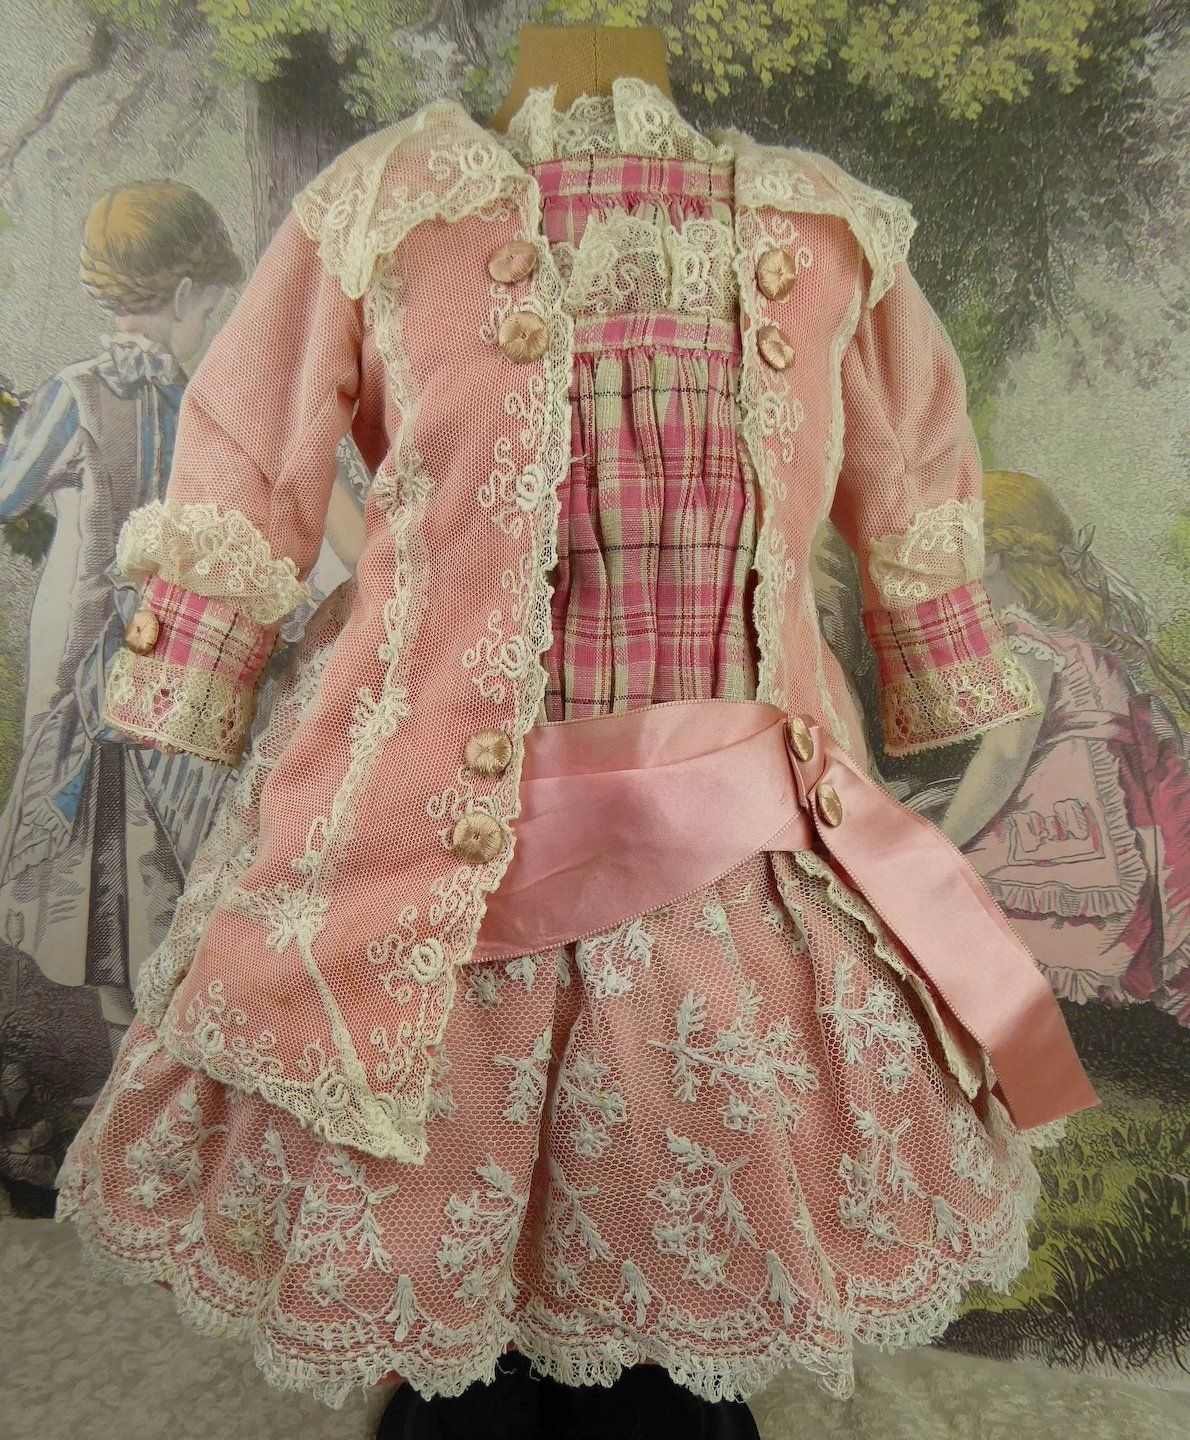 b885592799801 French pink satin and lace antique doll dress with matching bonnet for  Jumeau, Bru, Steiner, Gaultier or other Bébé